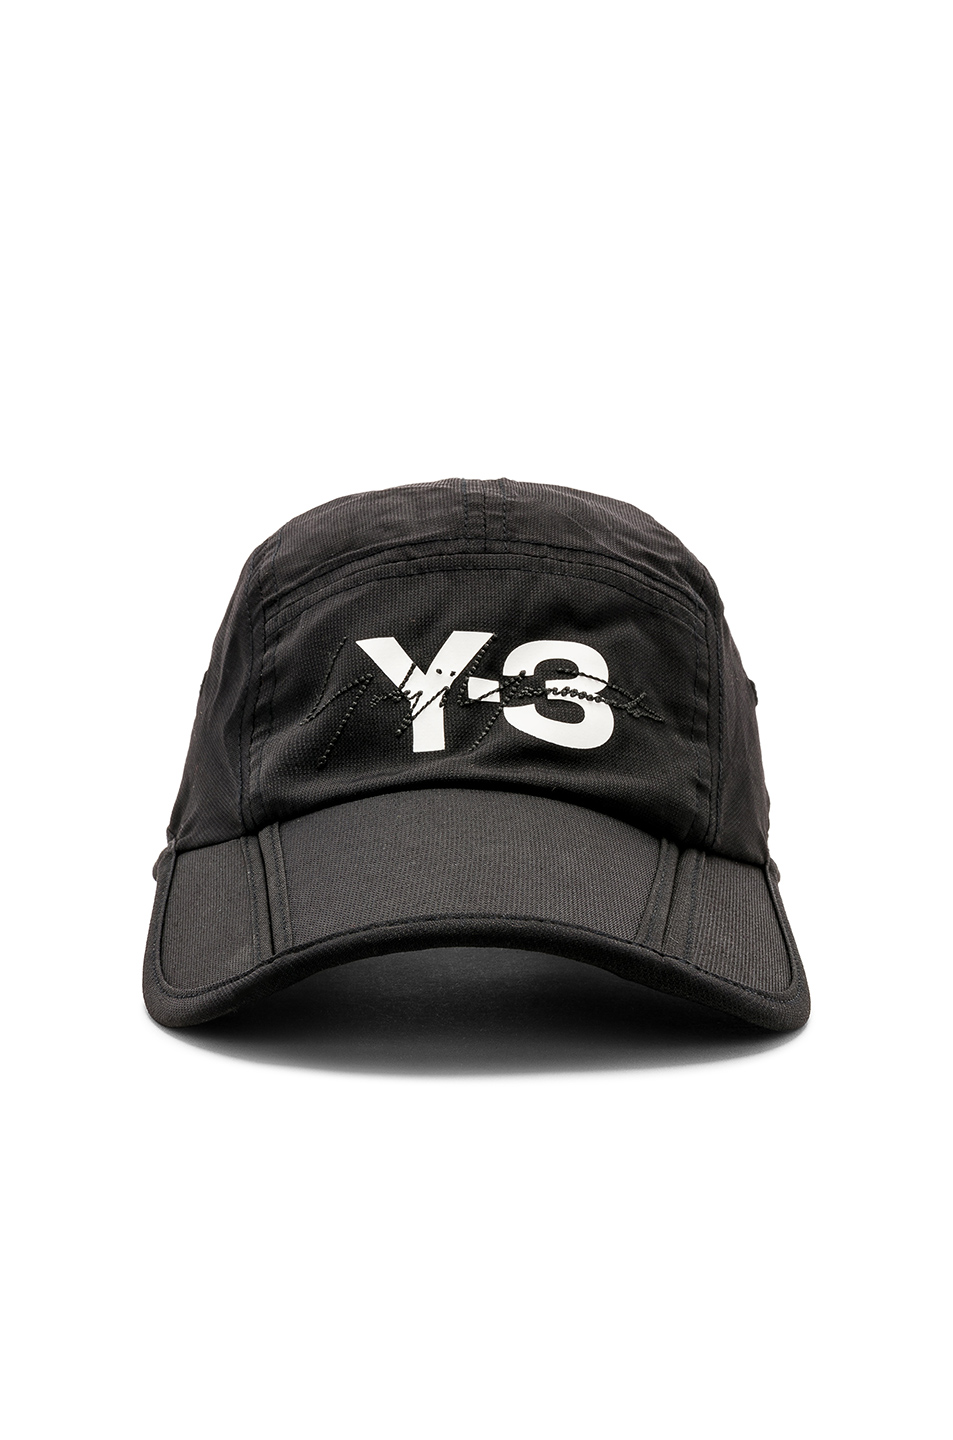 6696c6ed2988 Buy Original Y-3 Yohji Yamamoto Foldable Cap at Indonesia